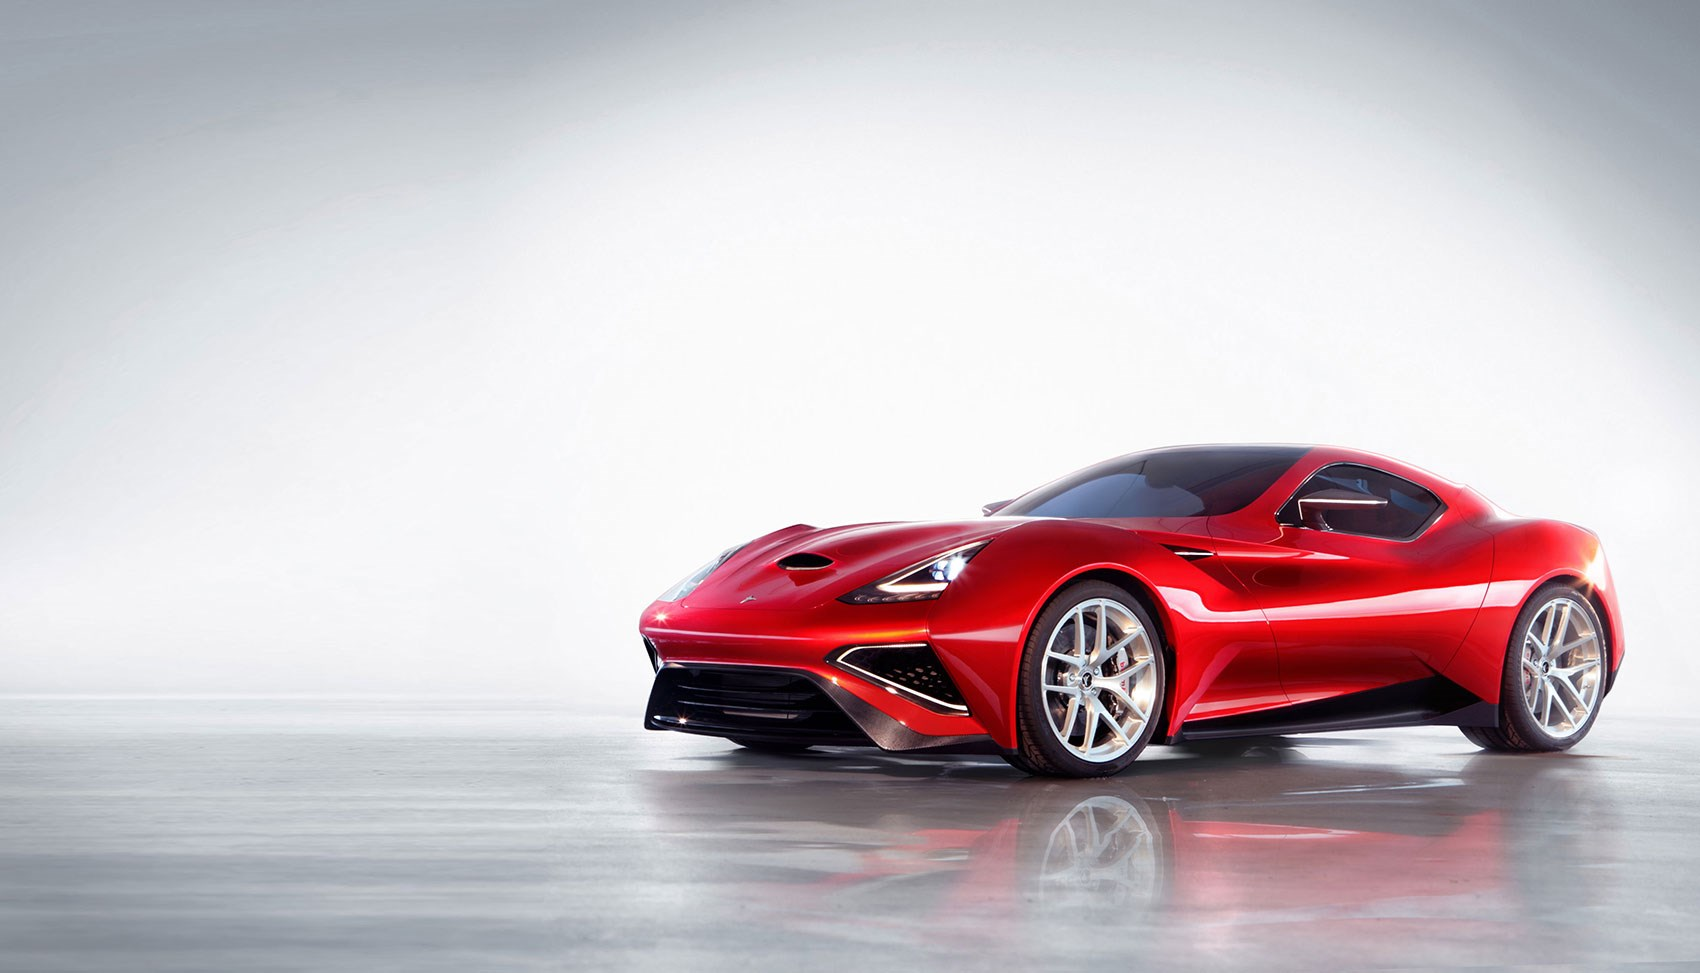 Chinese Titanium Hypercar Icona Vulcano Heading To Pebble